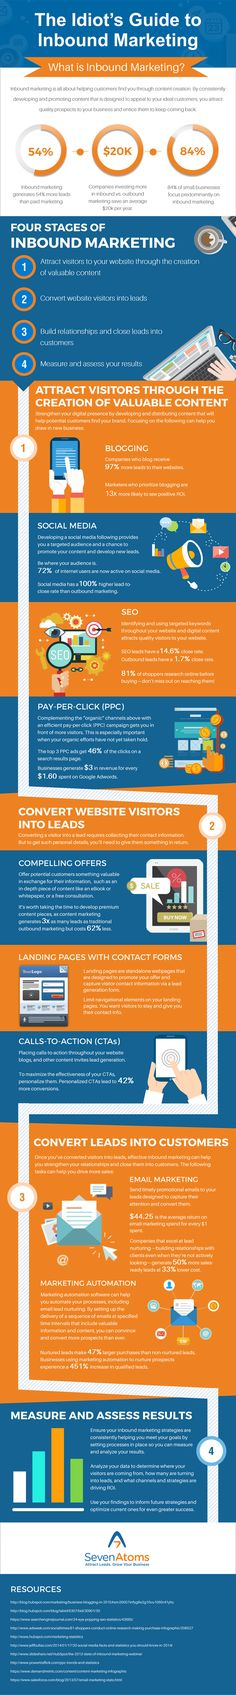 The Idiot's Guide To Inbound Marketing #Infographic #Marketing